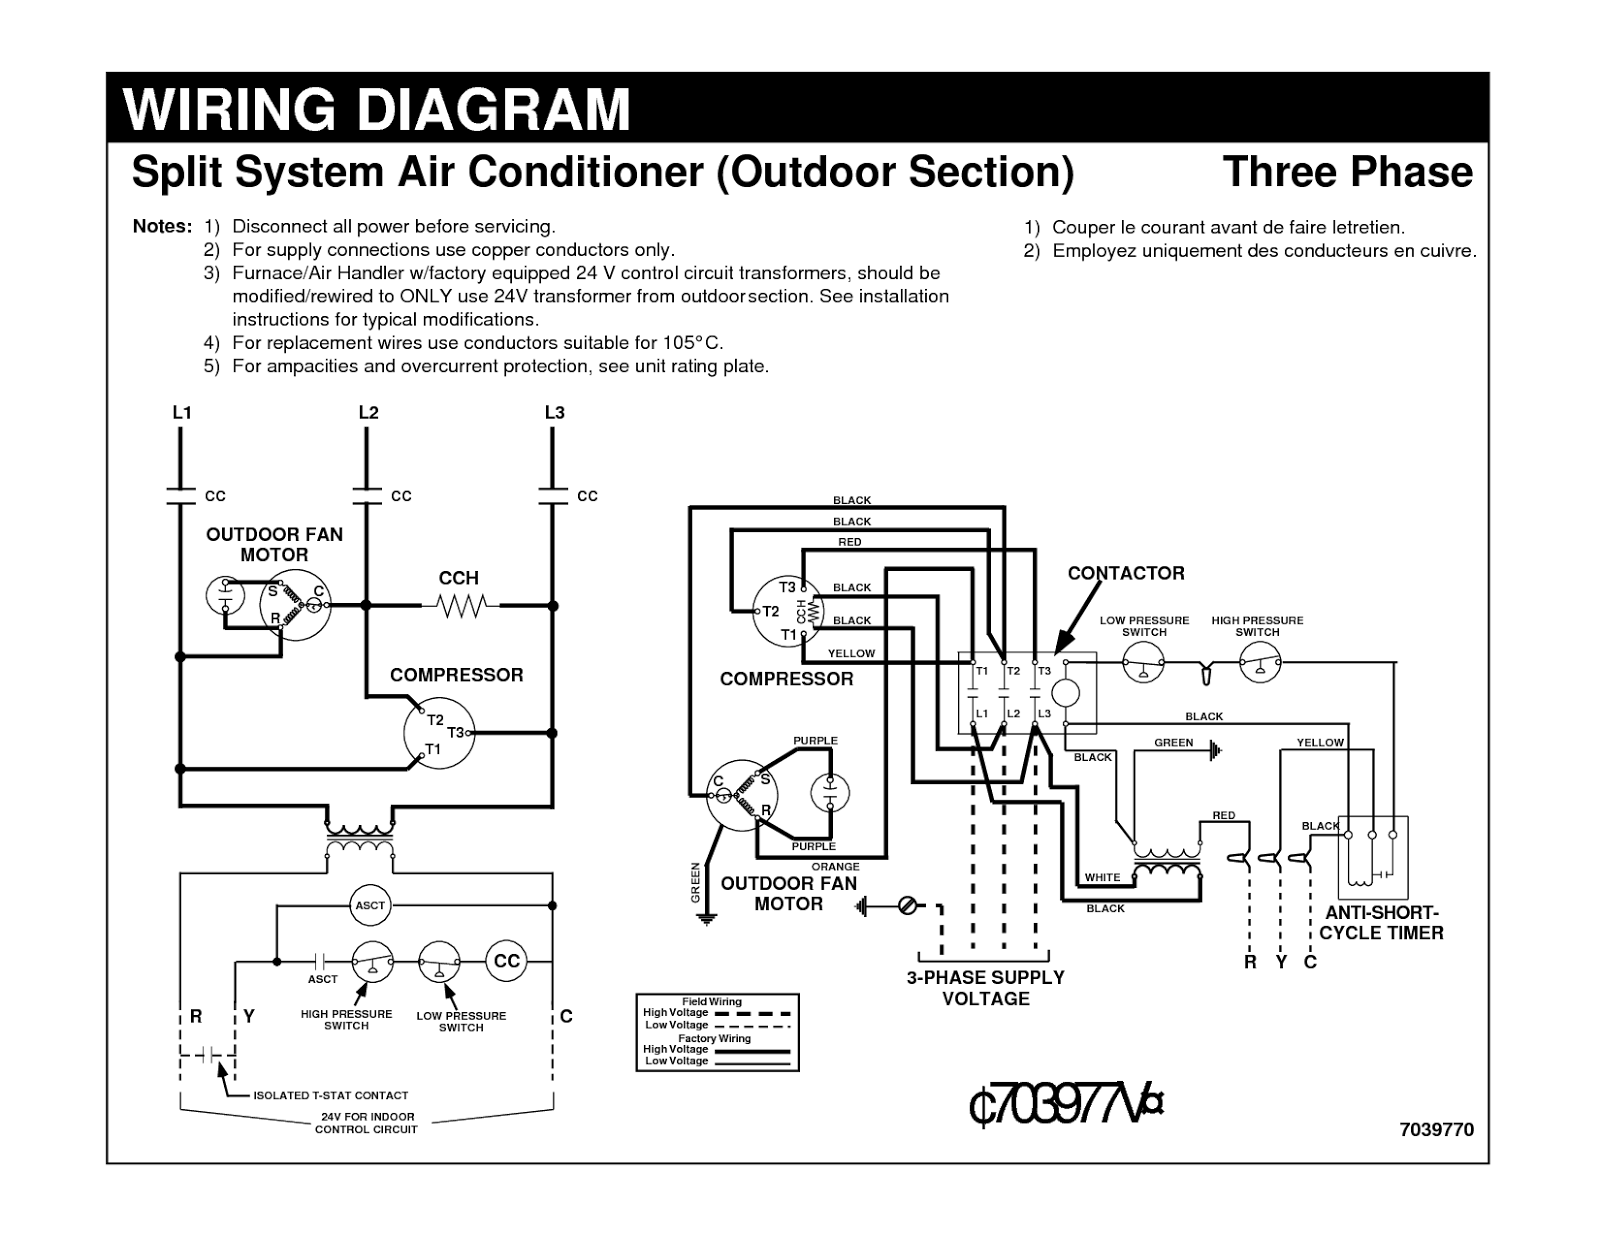 Home Air Conditioner Wiring Diagram Blog Old Furnace Electrical Diagrams For Conditioning Systems Part One